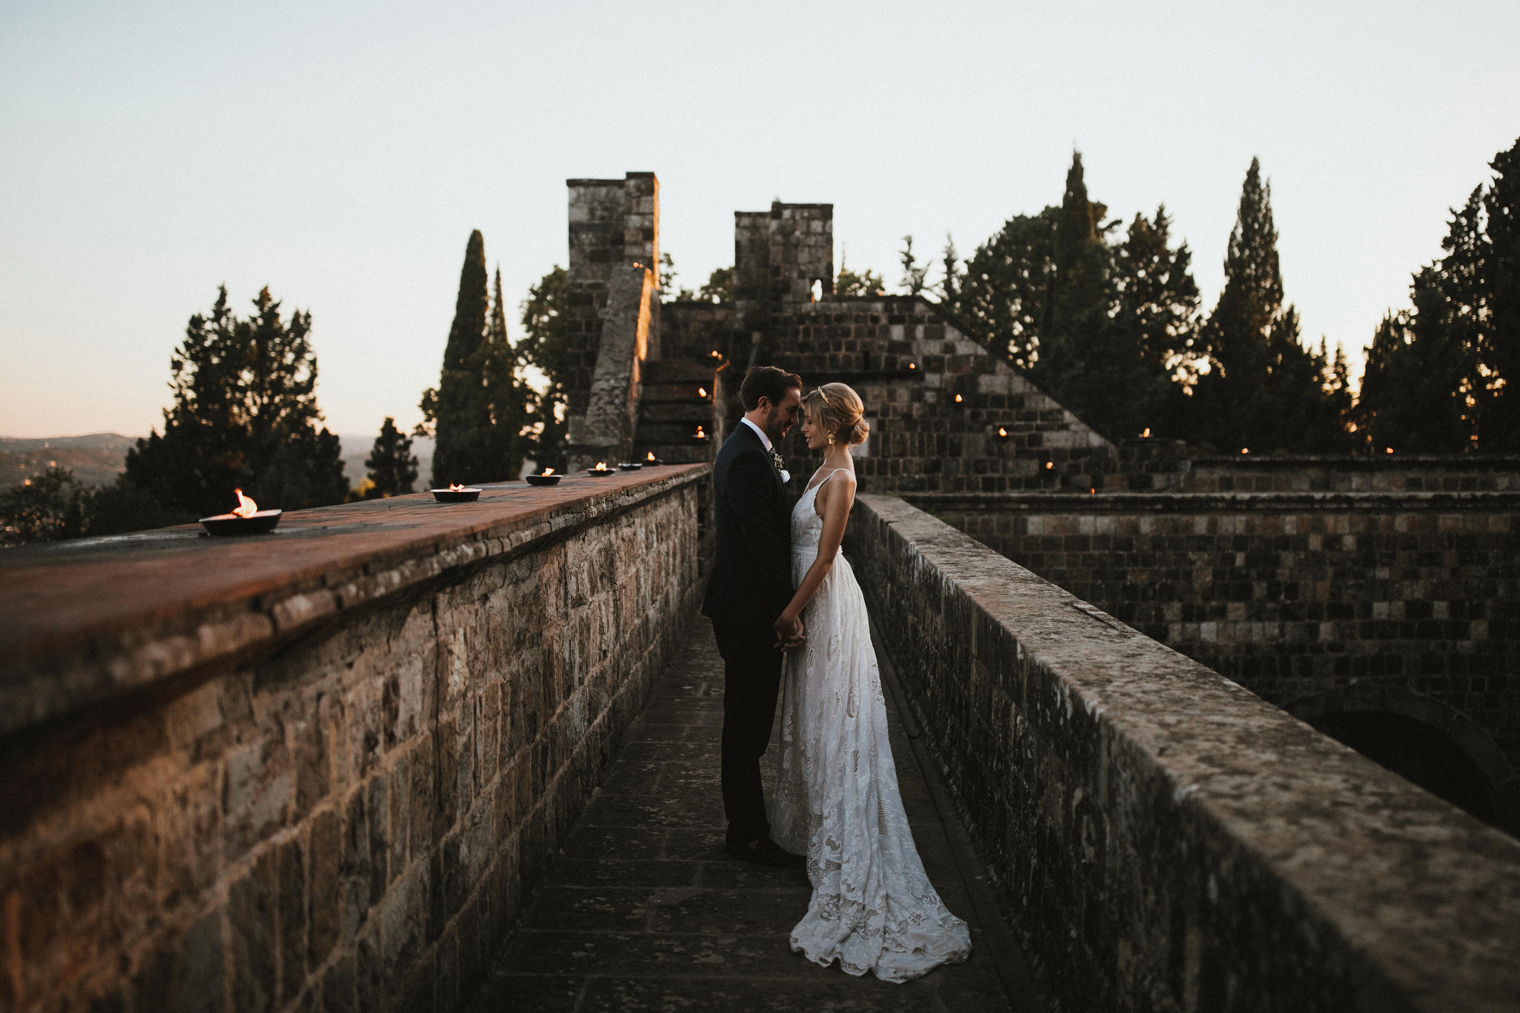 Beautiful wedding venue in Fiesole, Tuscany